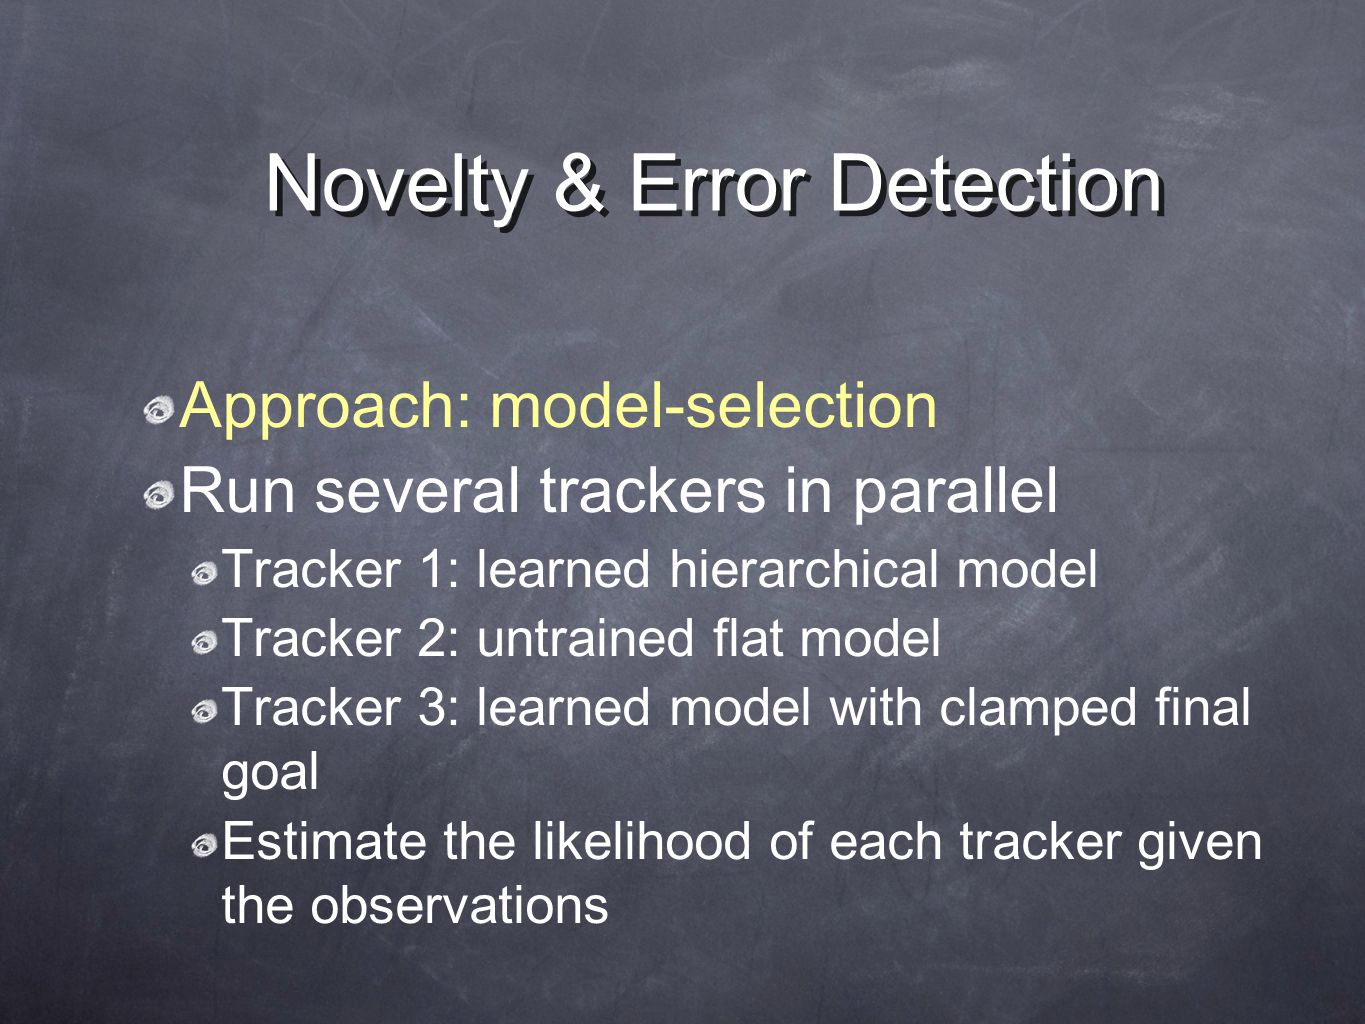 Novelty & Error Detection Approach: model-selection Run several trackers in parallel Tracker 1: learned hierarchical model Tracker 2: untrained flat model Tracker 3: learned model with clamped final goal Estimate the likelihood of each tracker given the observations